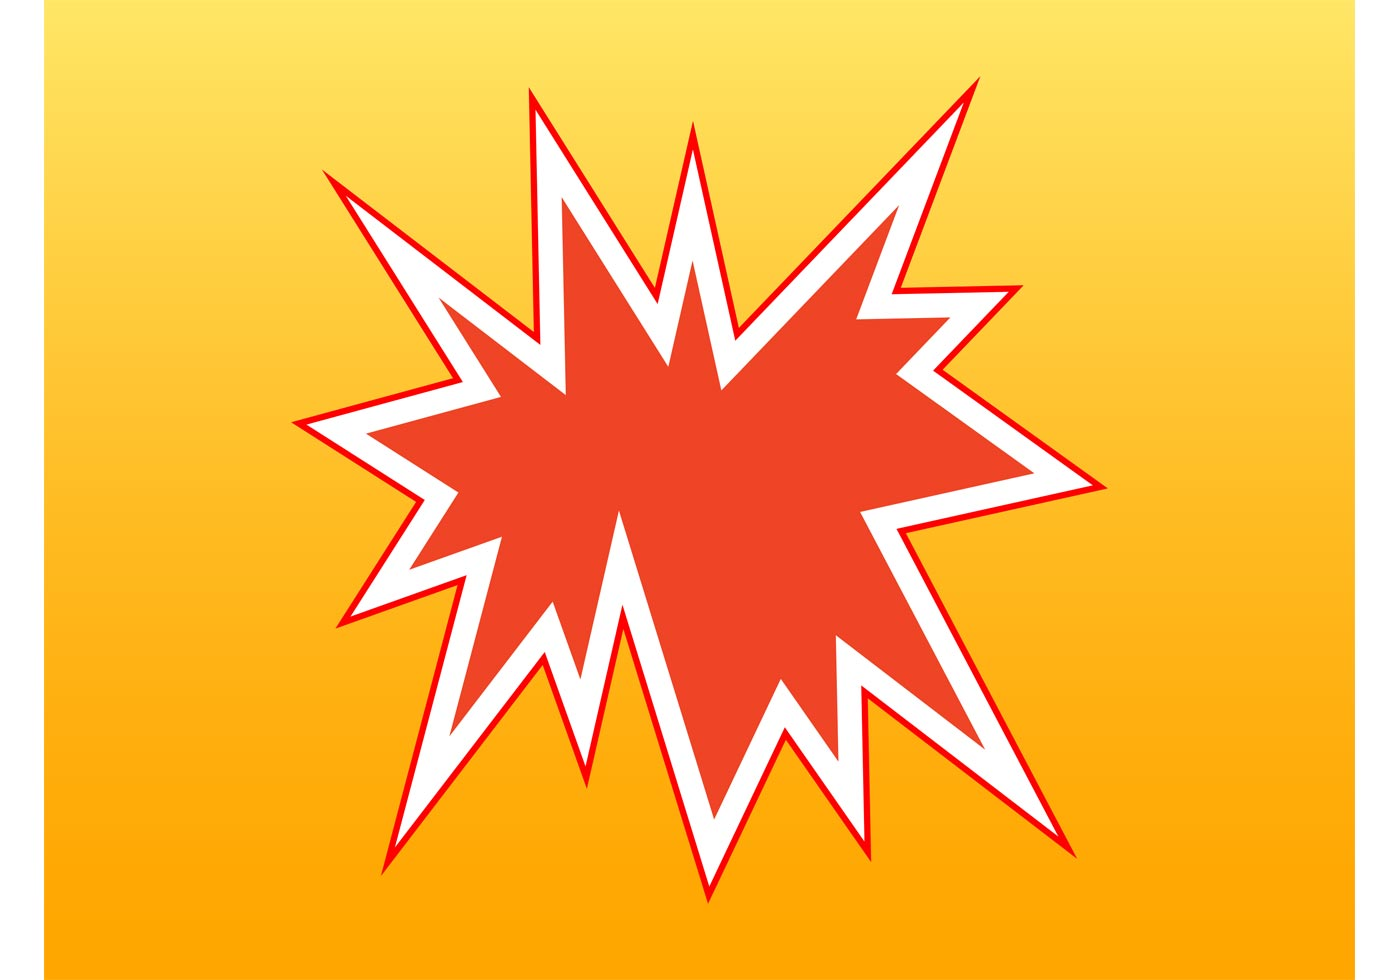 comic book explosion download free vector art stock